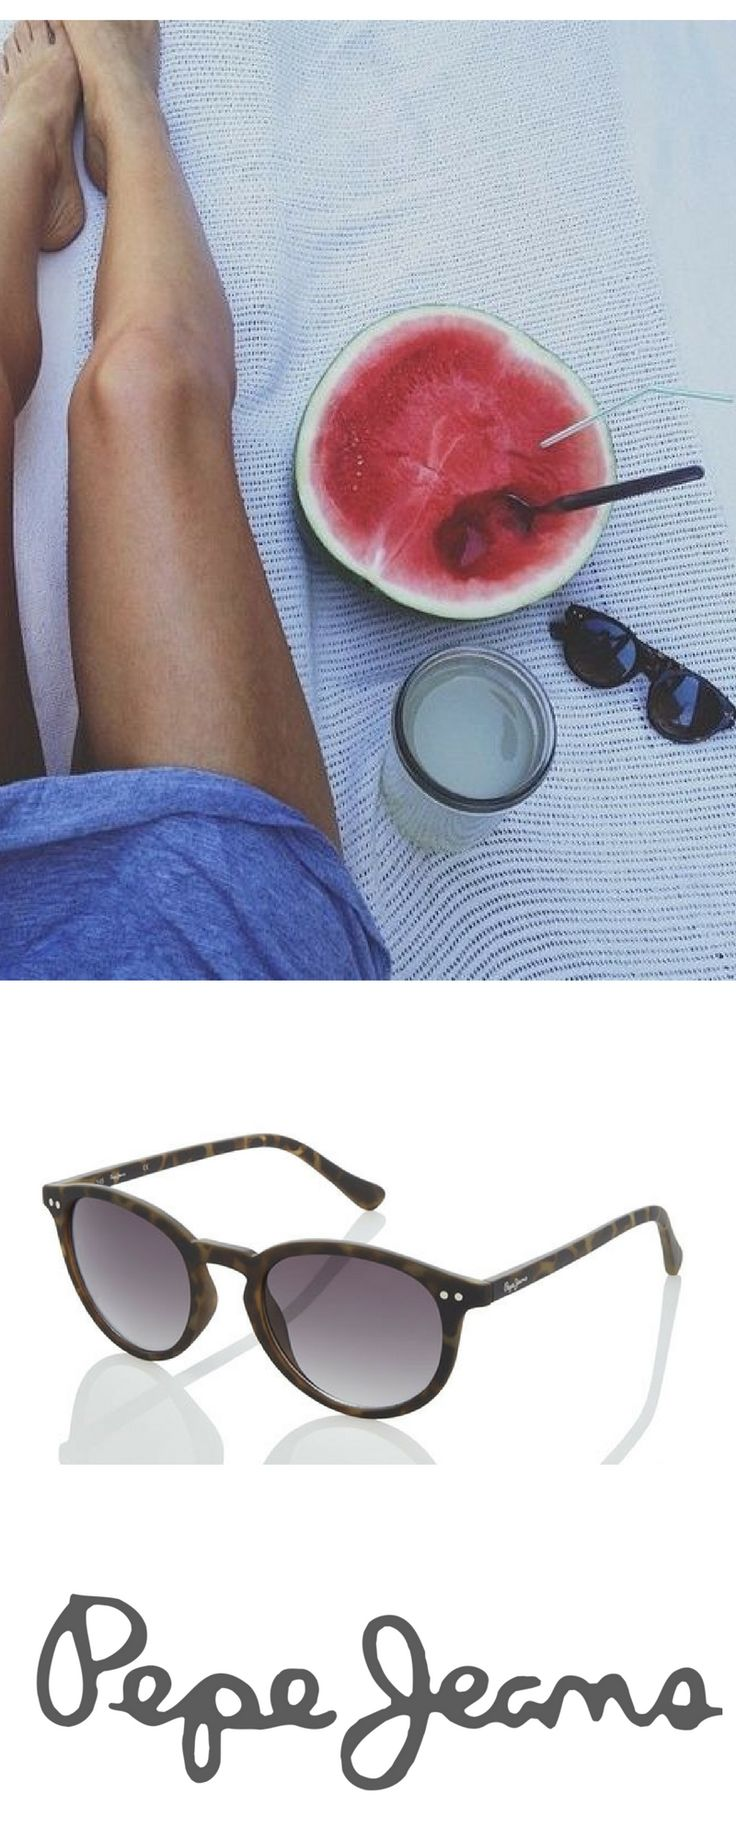 What's better than watermelon in a sunny day? Maybe a pair of these Pepe Jeans Sunnies. Pic: @glitterguide